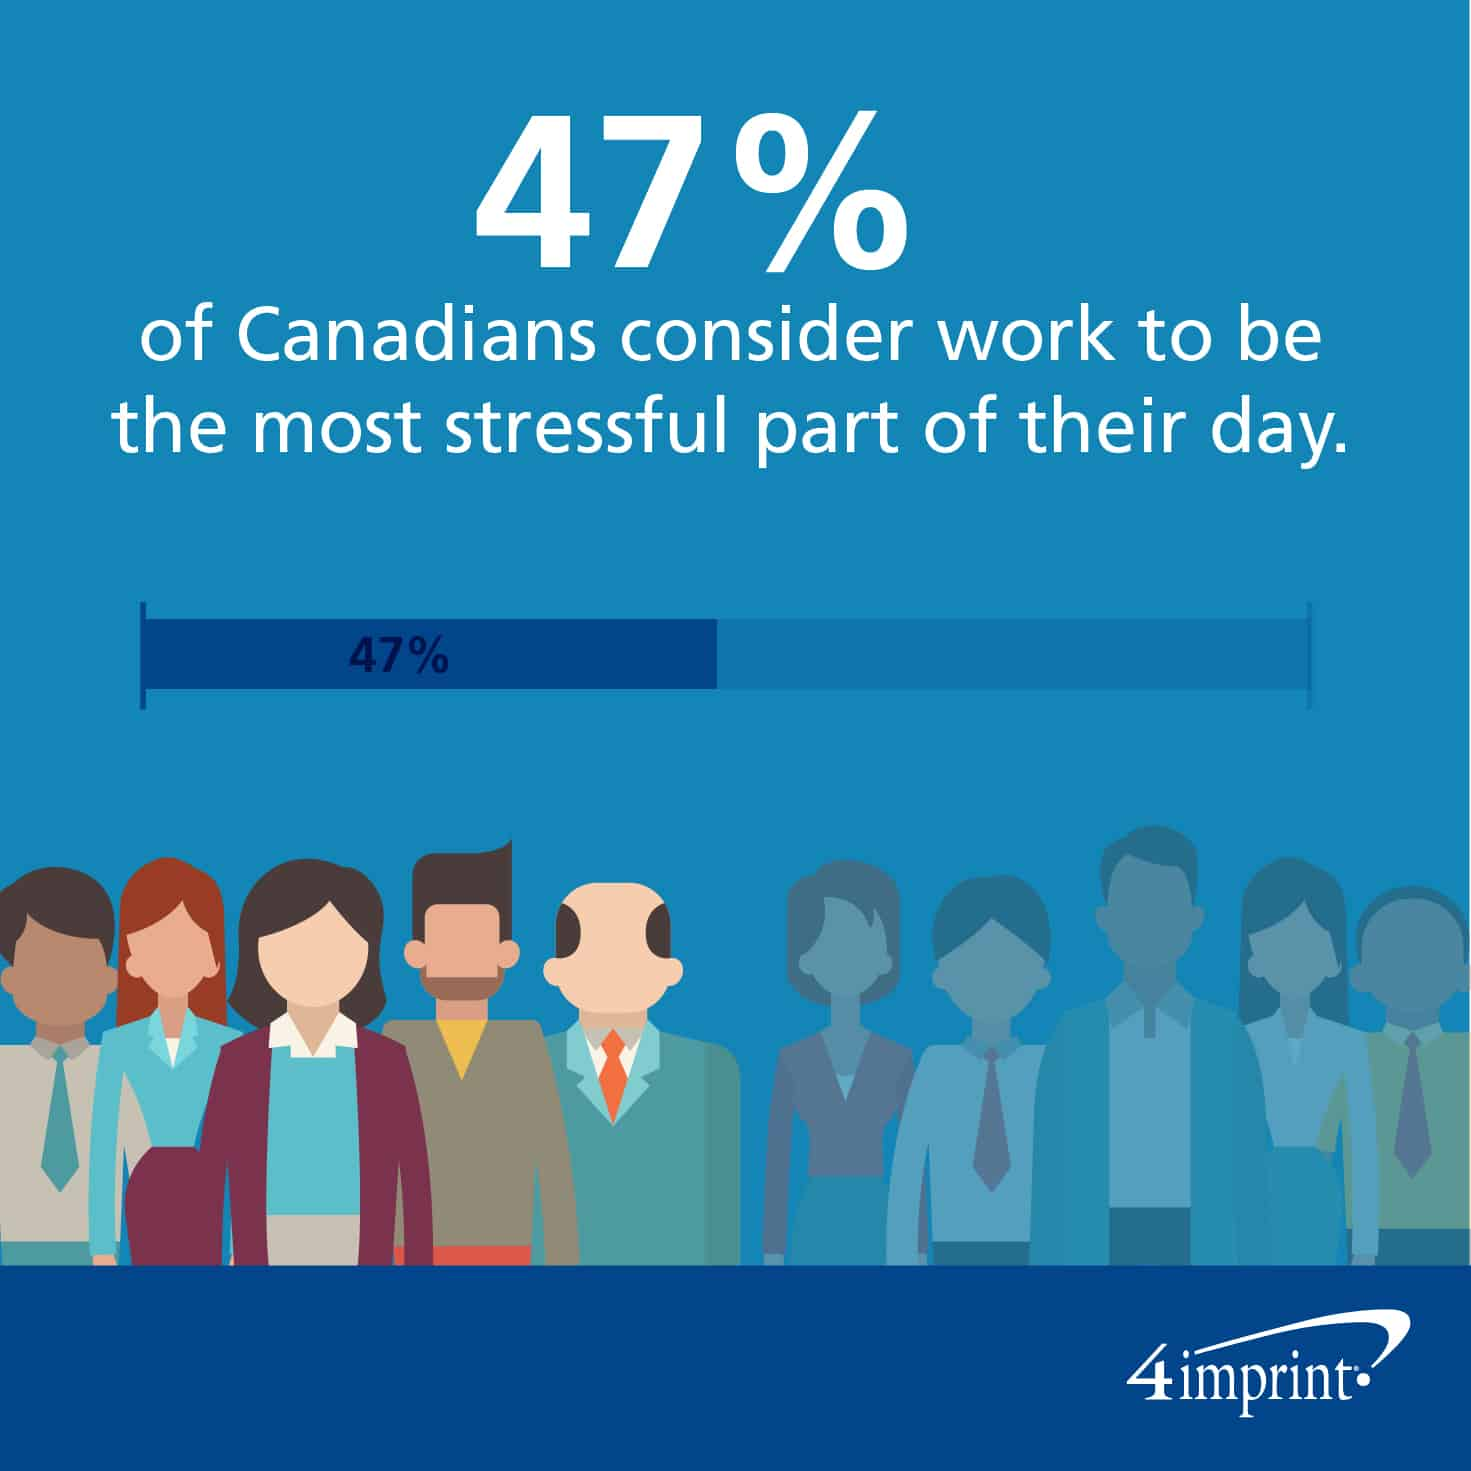 47% of Canadians consider work to be the most stressful part of their day. Branded corporate gifts can be a way to help make the work day less stressful.